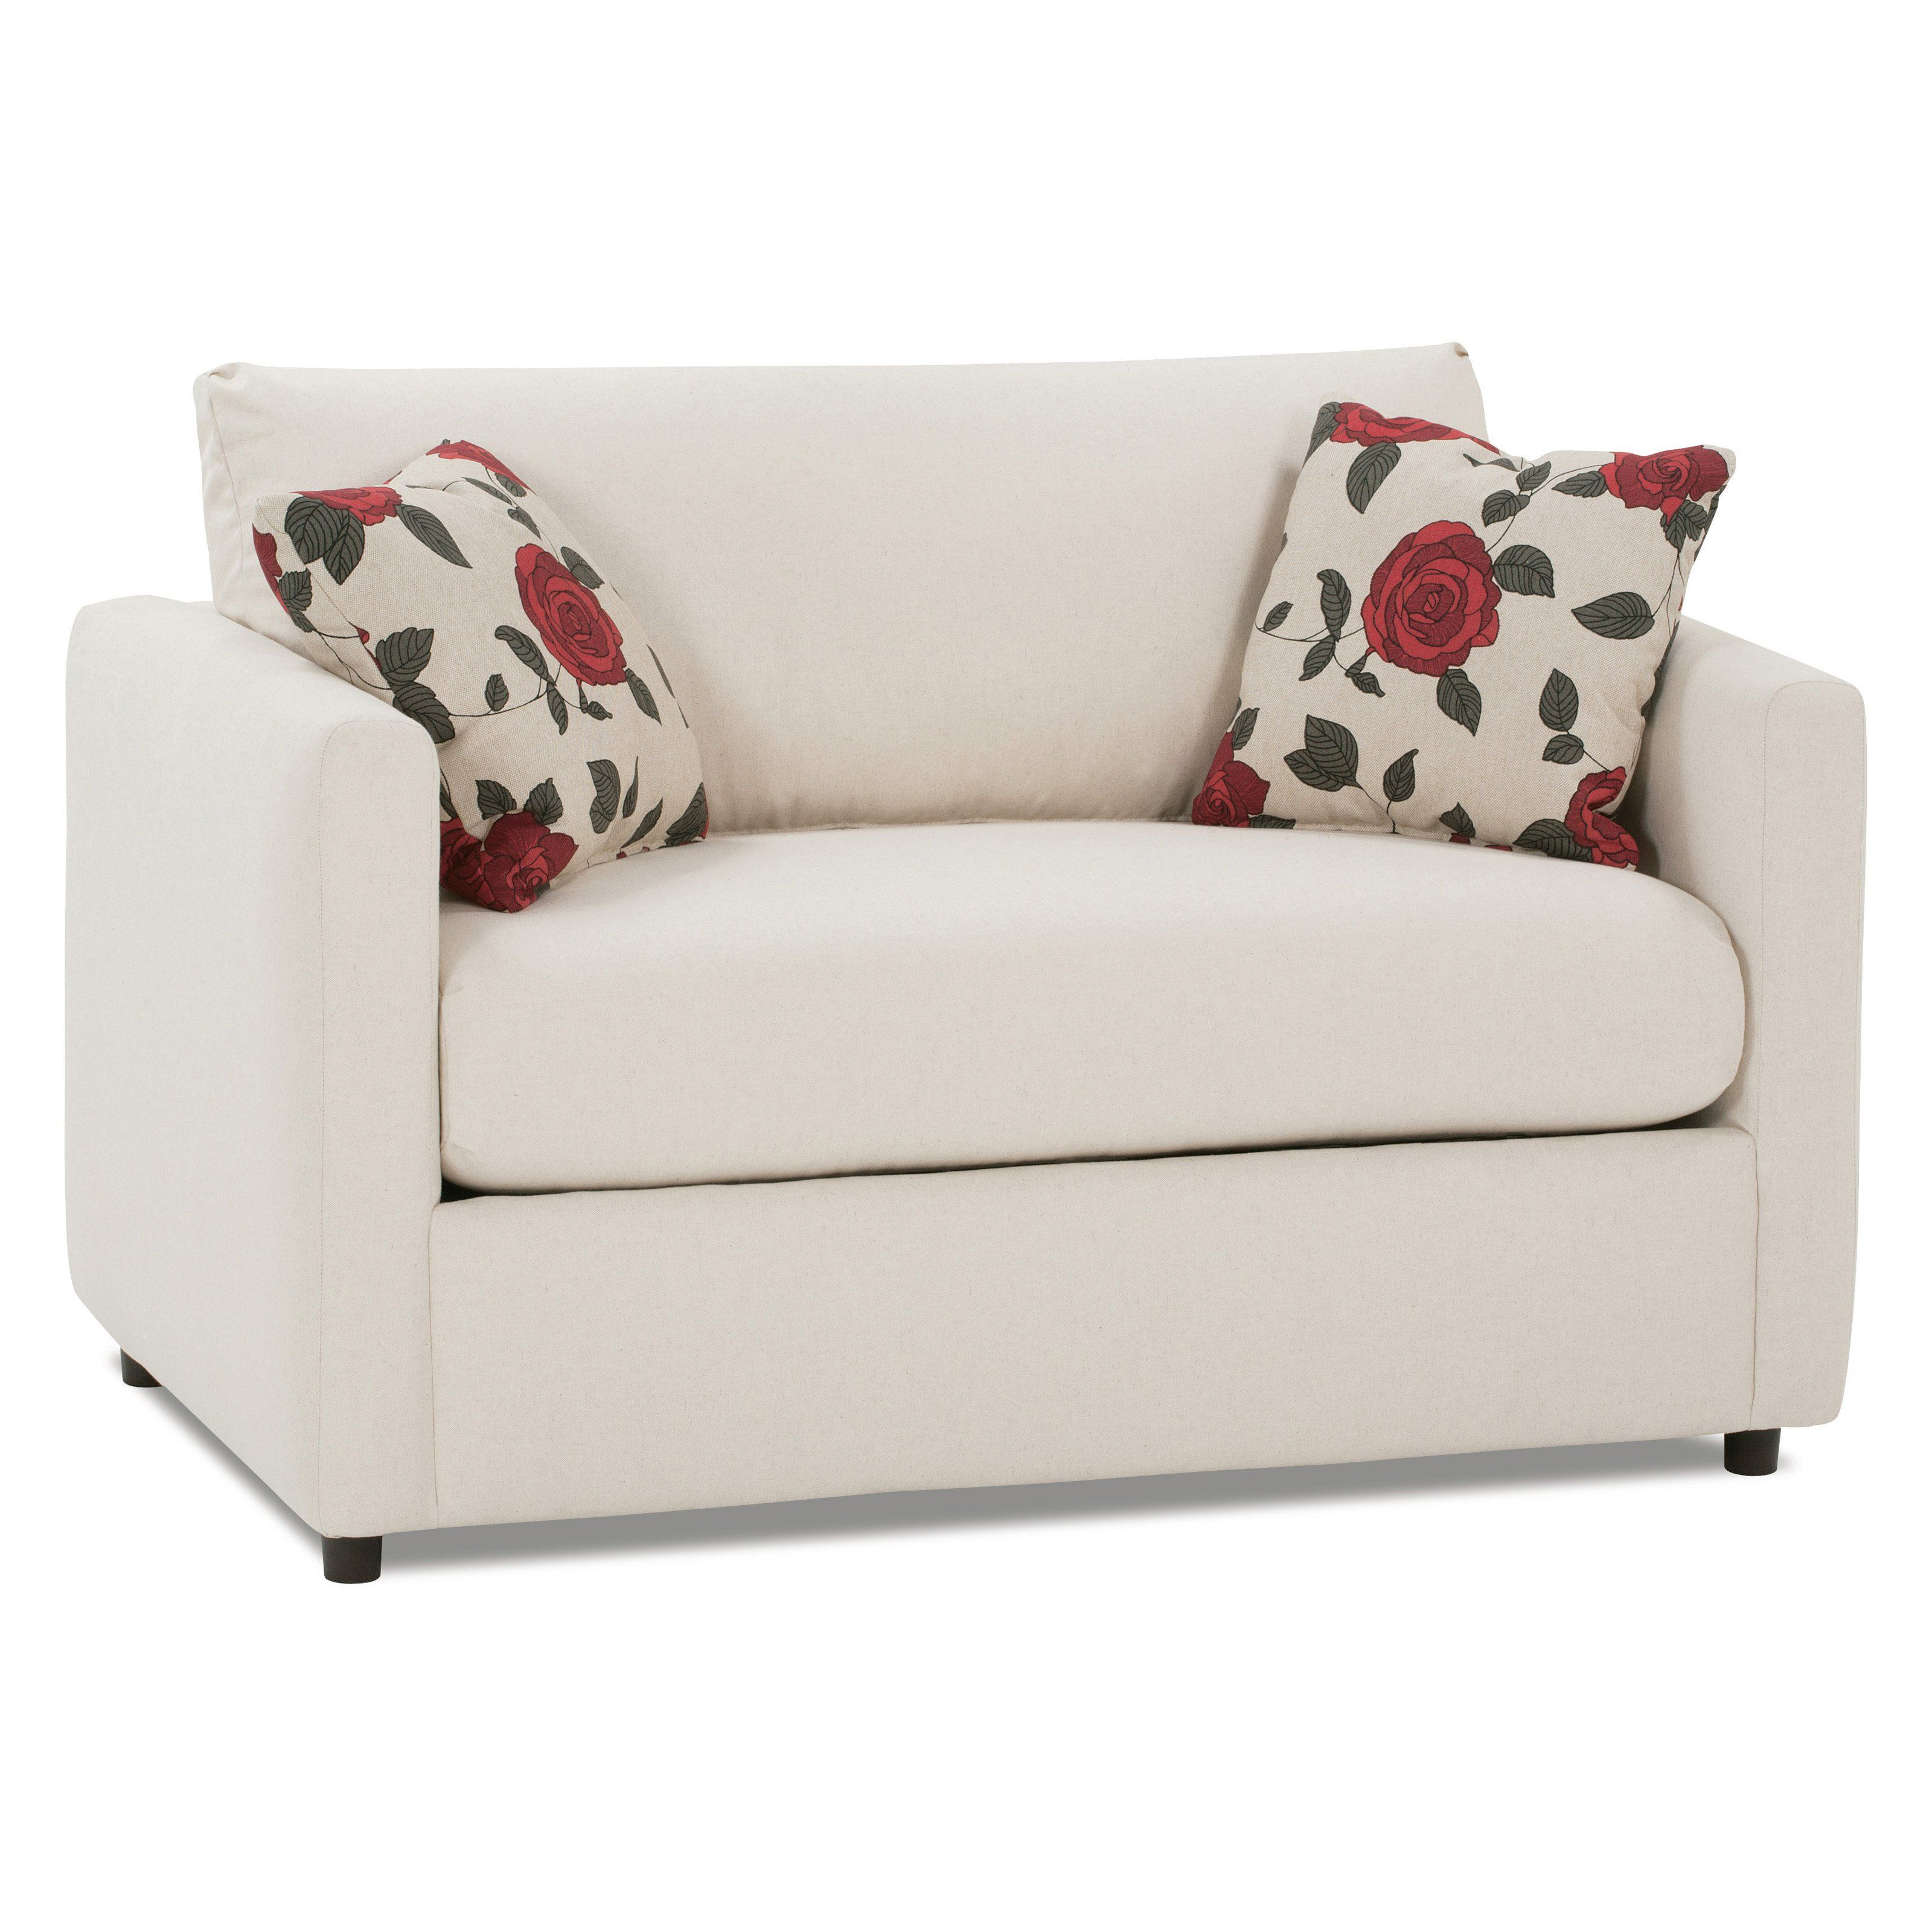 Recliner Sofa Stockdale Contemporary Twin Sleeper Chair by Rowe at Baer us Furniture